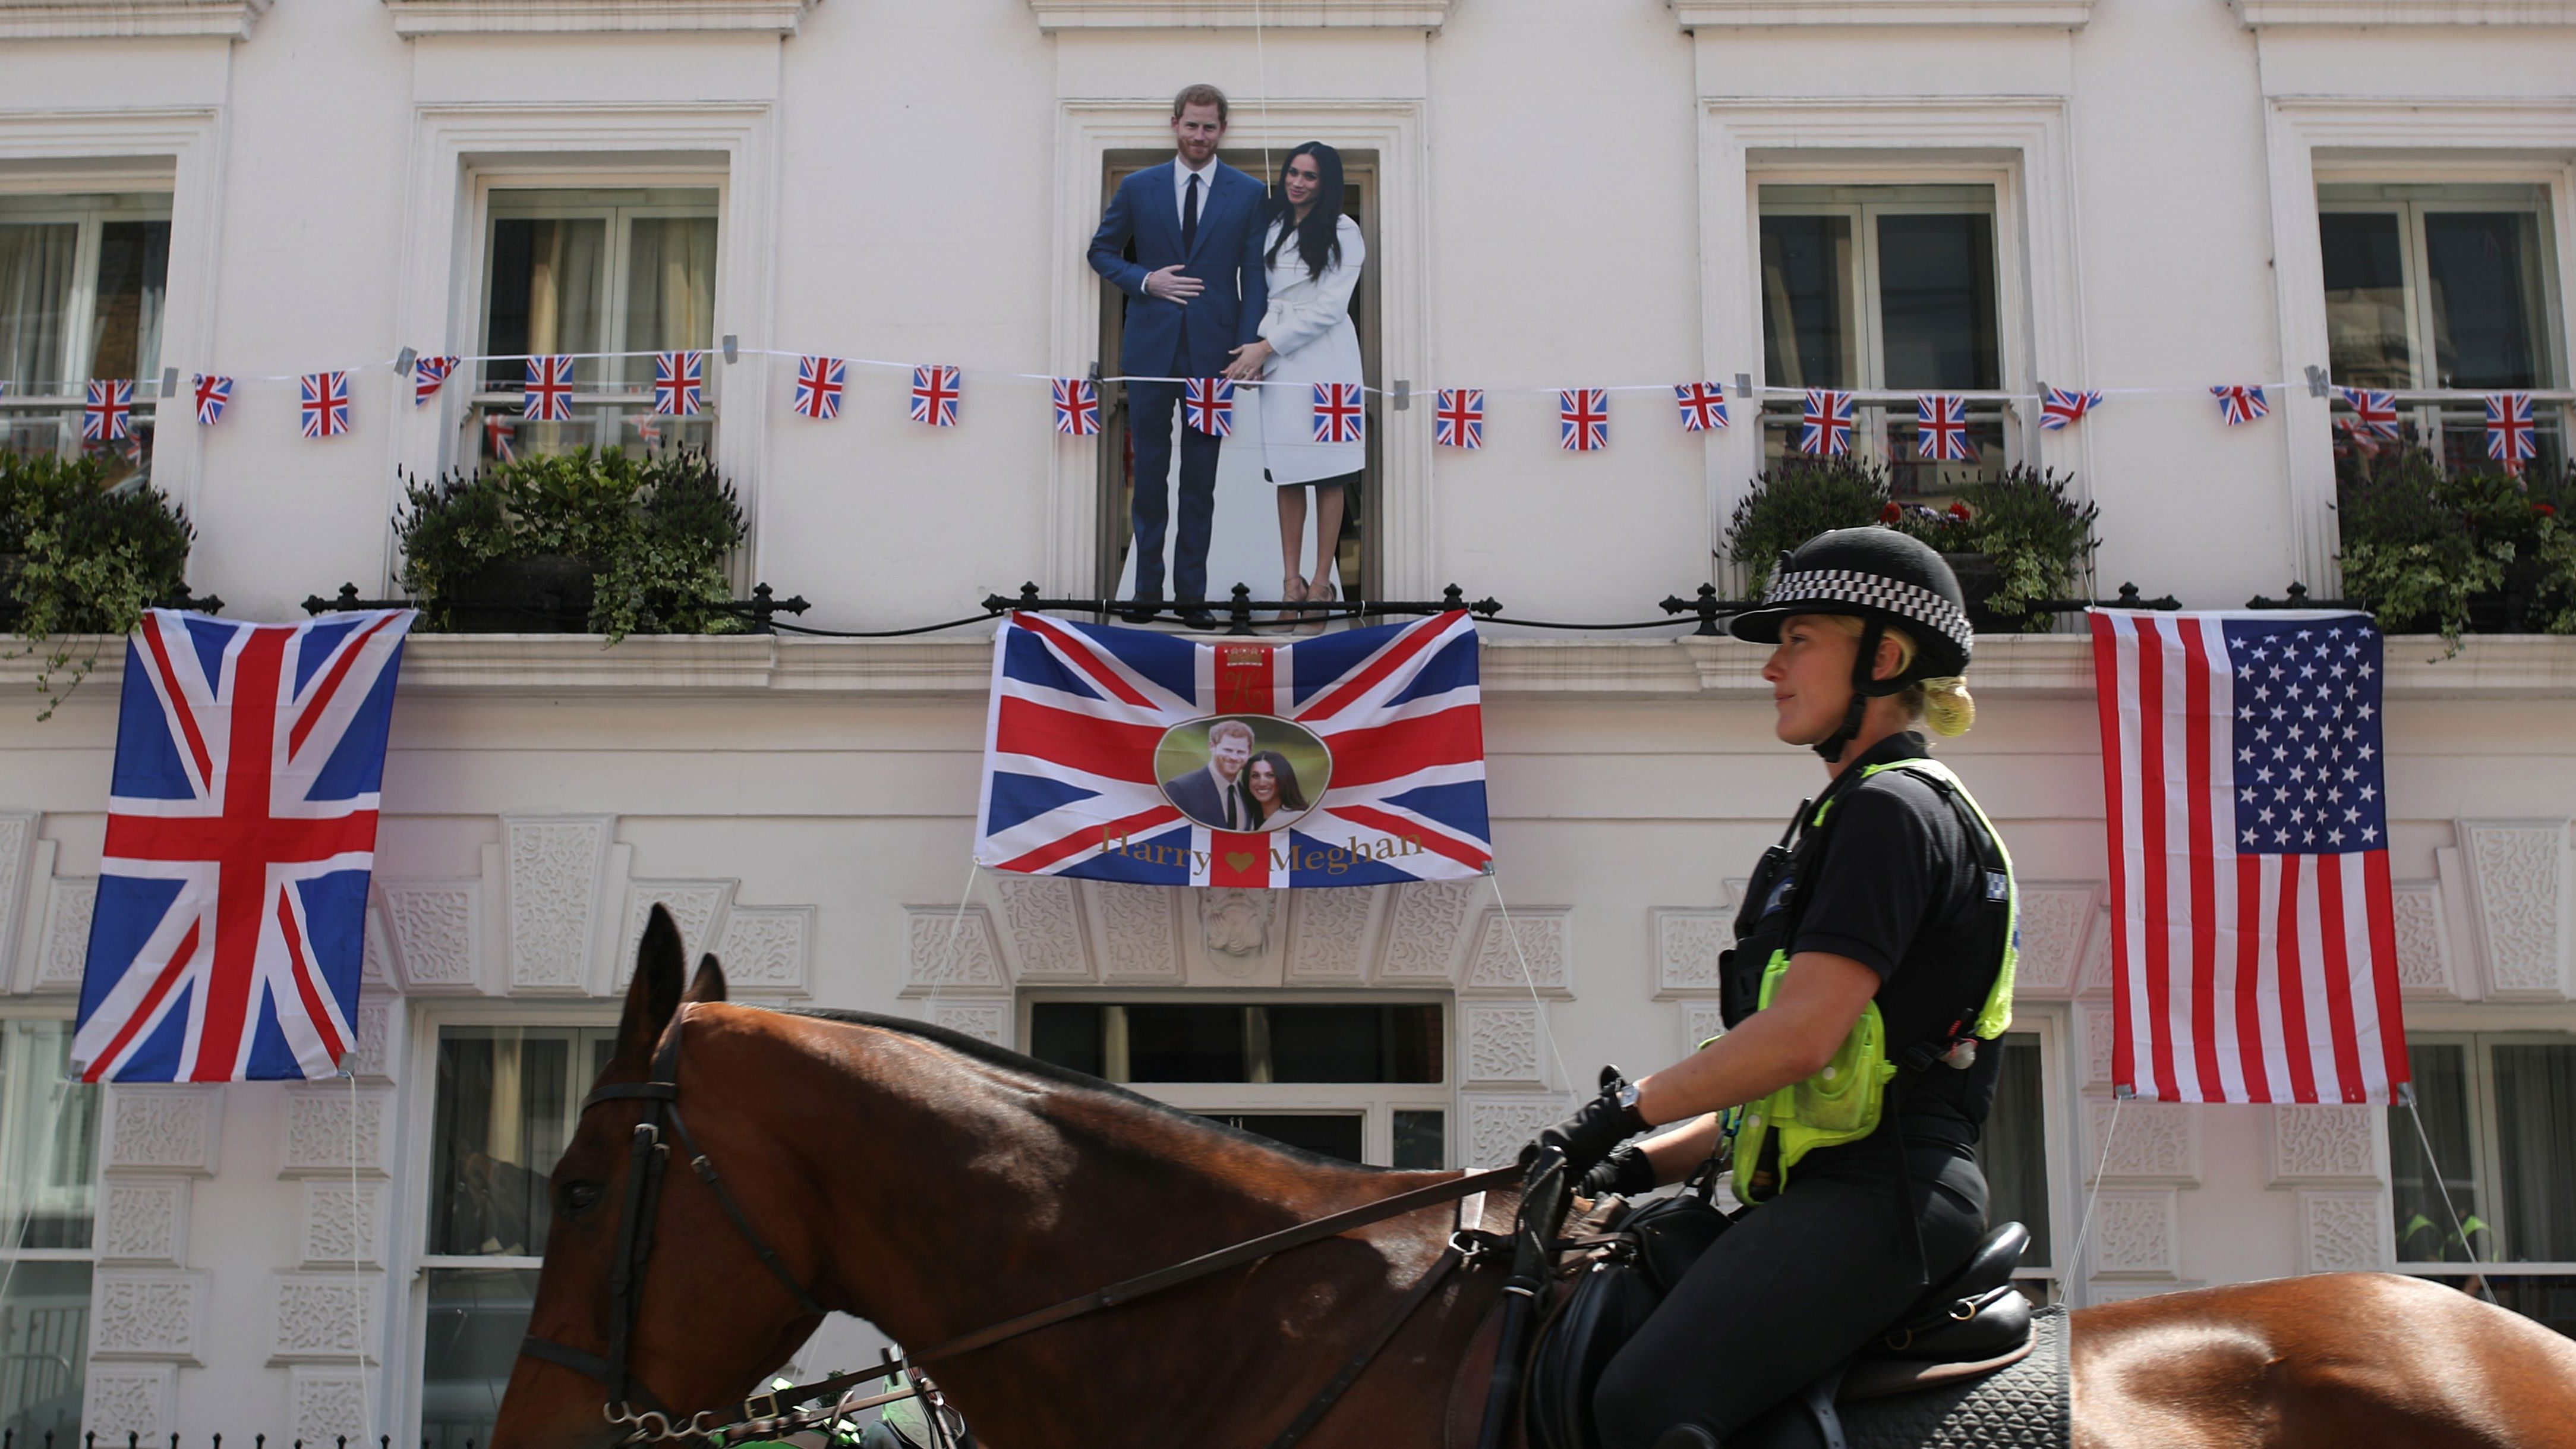 A police officer on horseback, rides past a cutout of Prince Harry and Meghan Markle, ahead of their wedding.